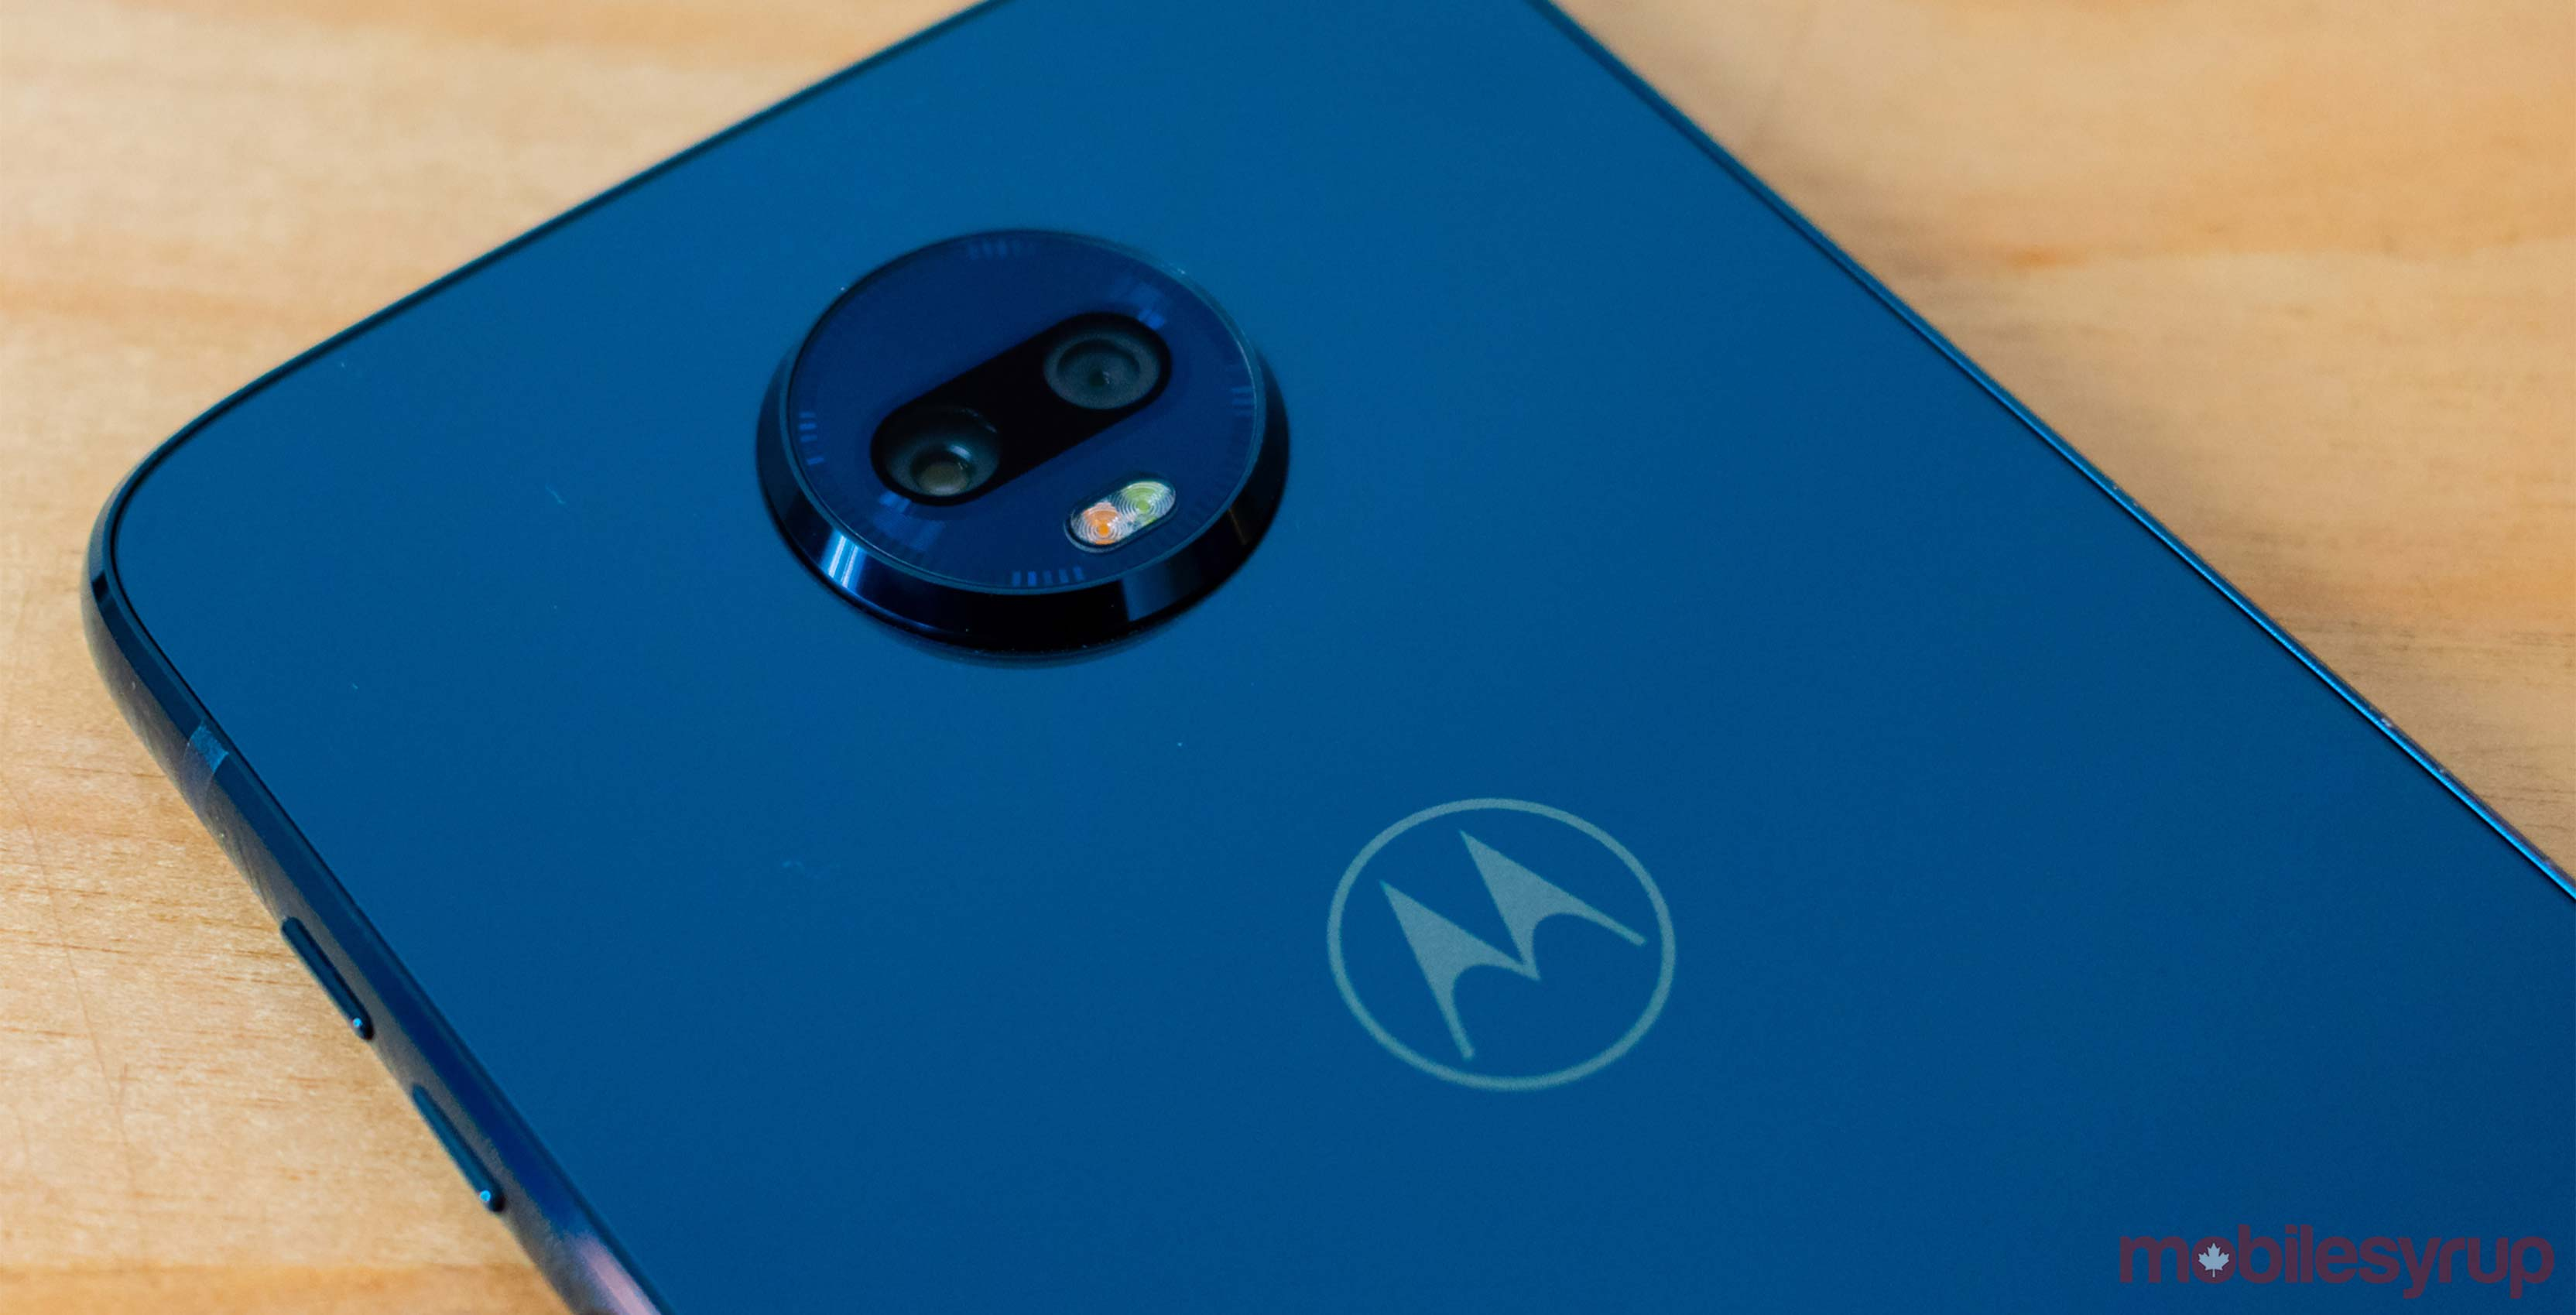 Motorola Moto E6 Plus has leaked, one month after E6 was revealed